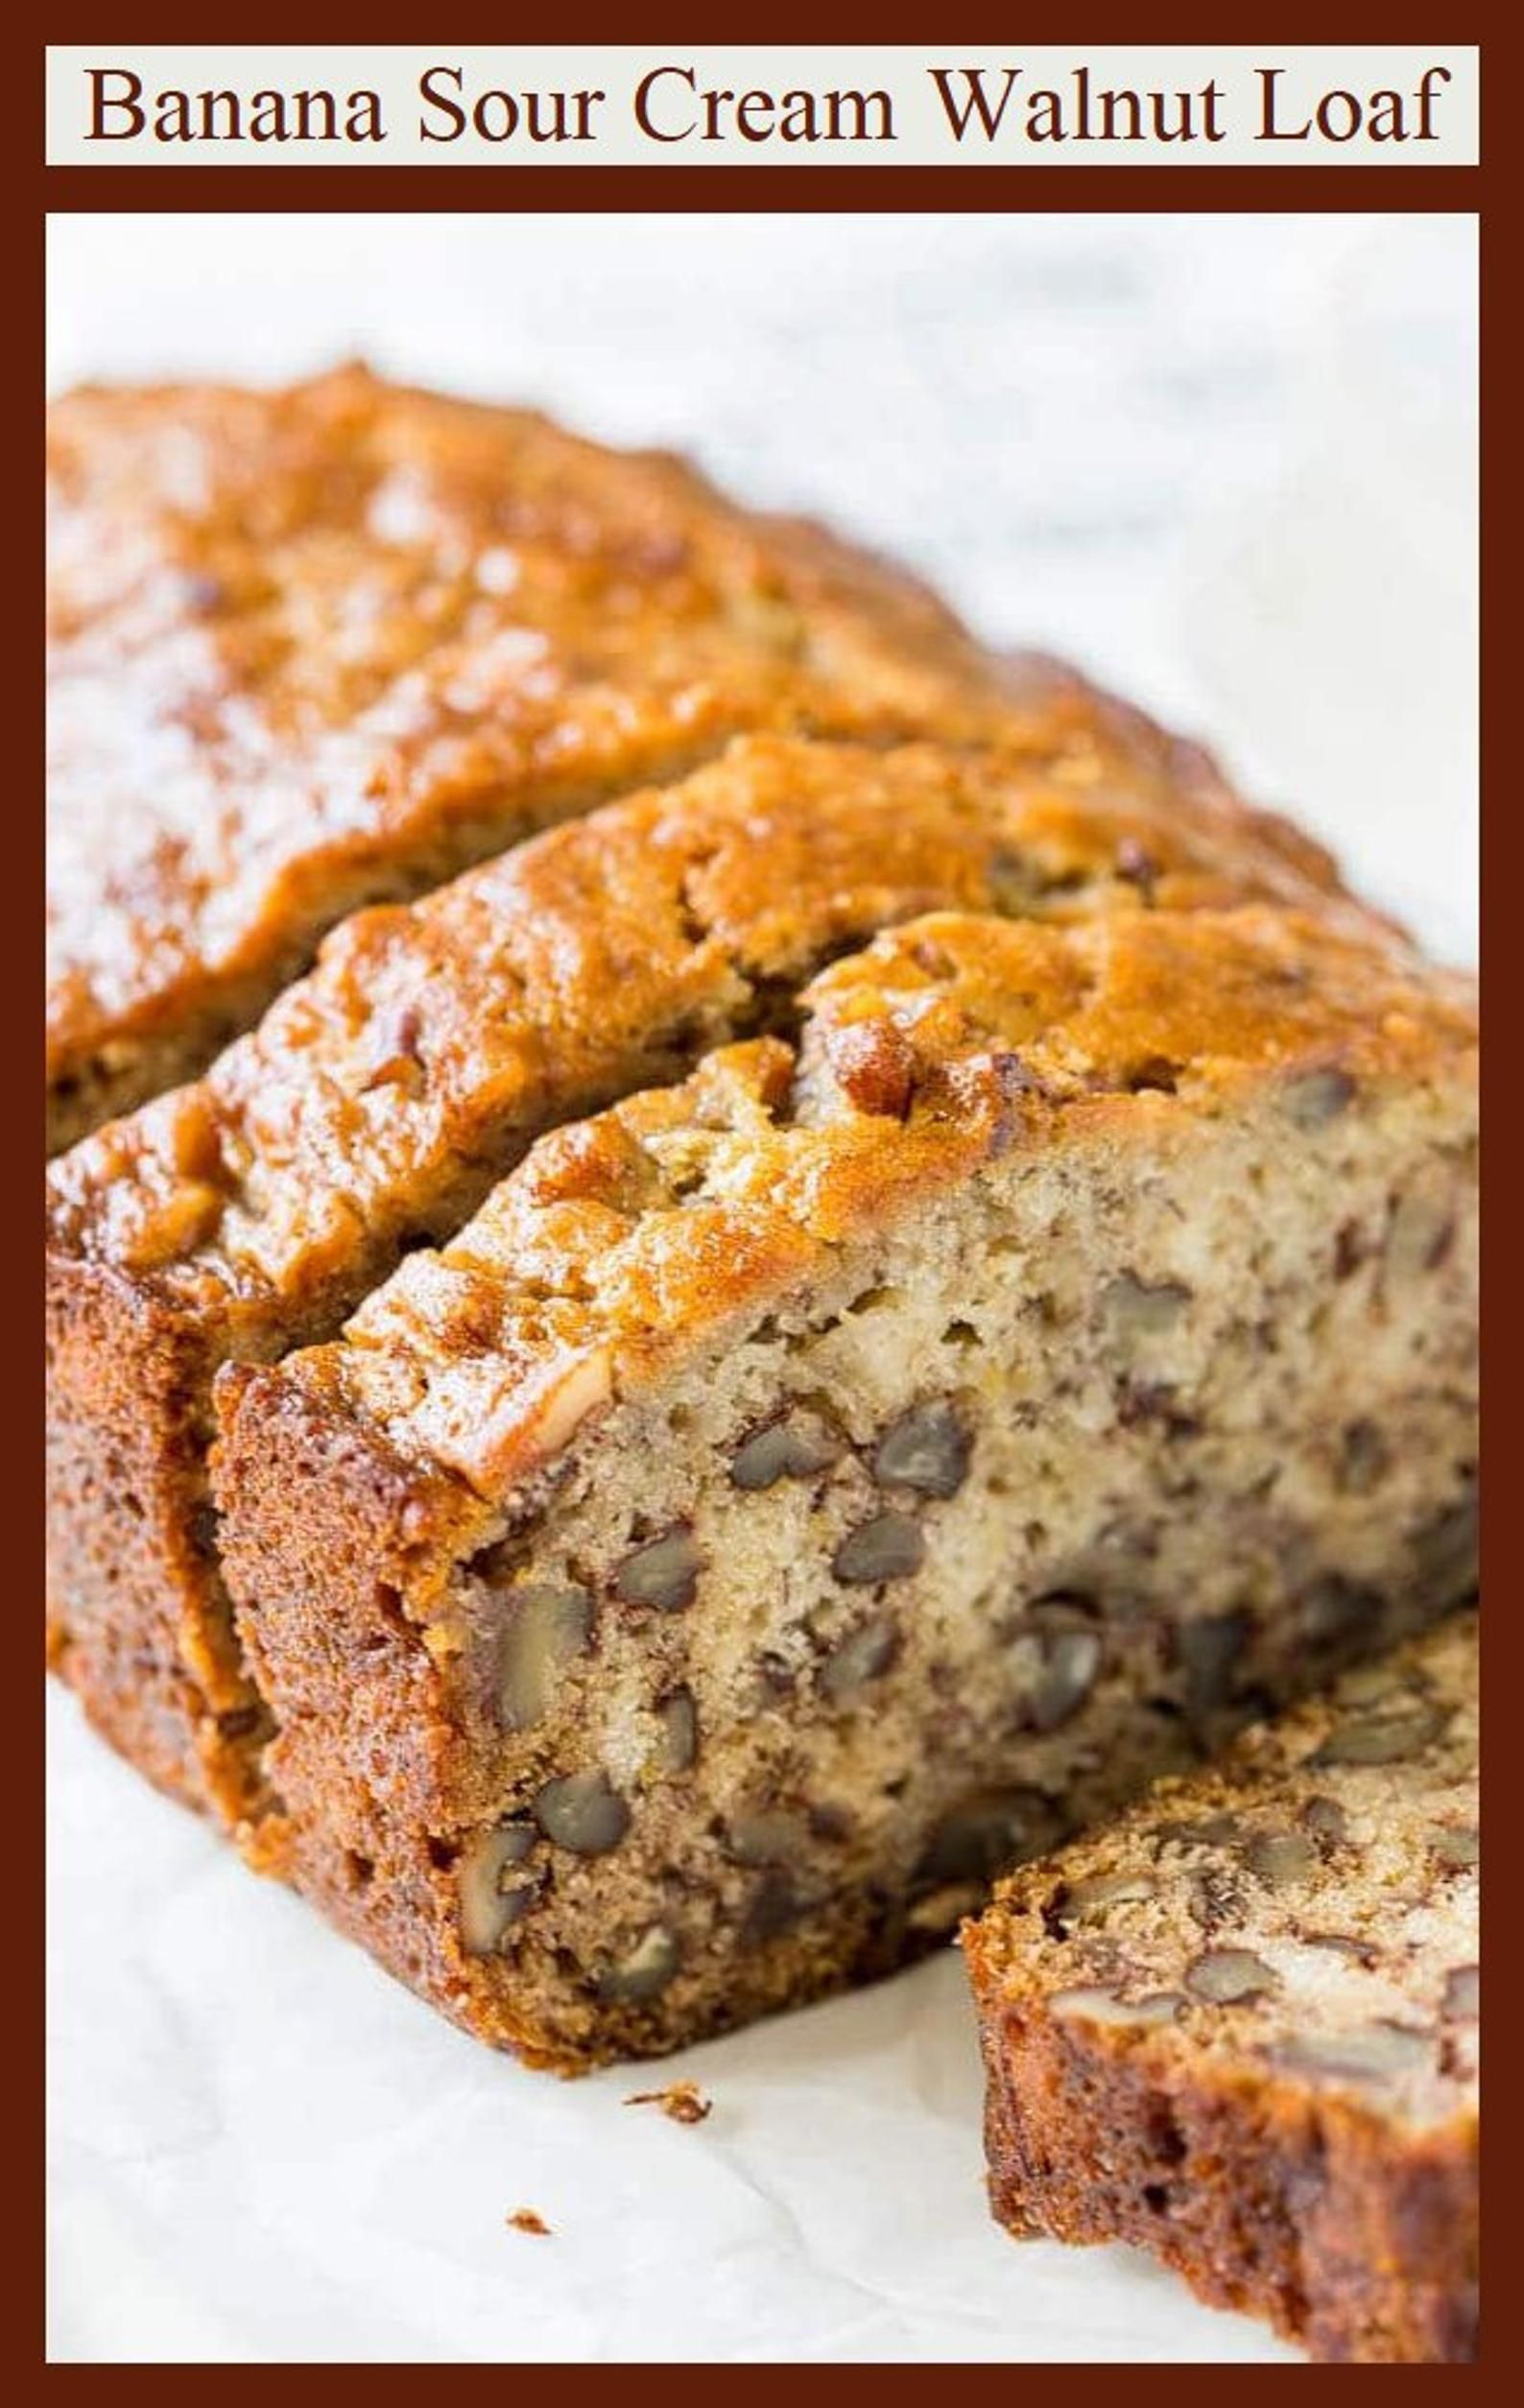 Banana Sour Cream Walnut Bread An Old Fashioned Vintage Recipe Great For Holiday Brunch Gift Baskets Perfect For Shipping To Friends In 2020 With Images Banana Bread Recipes Banana